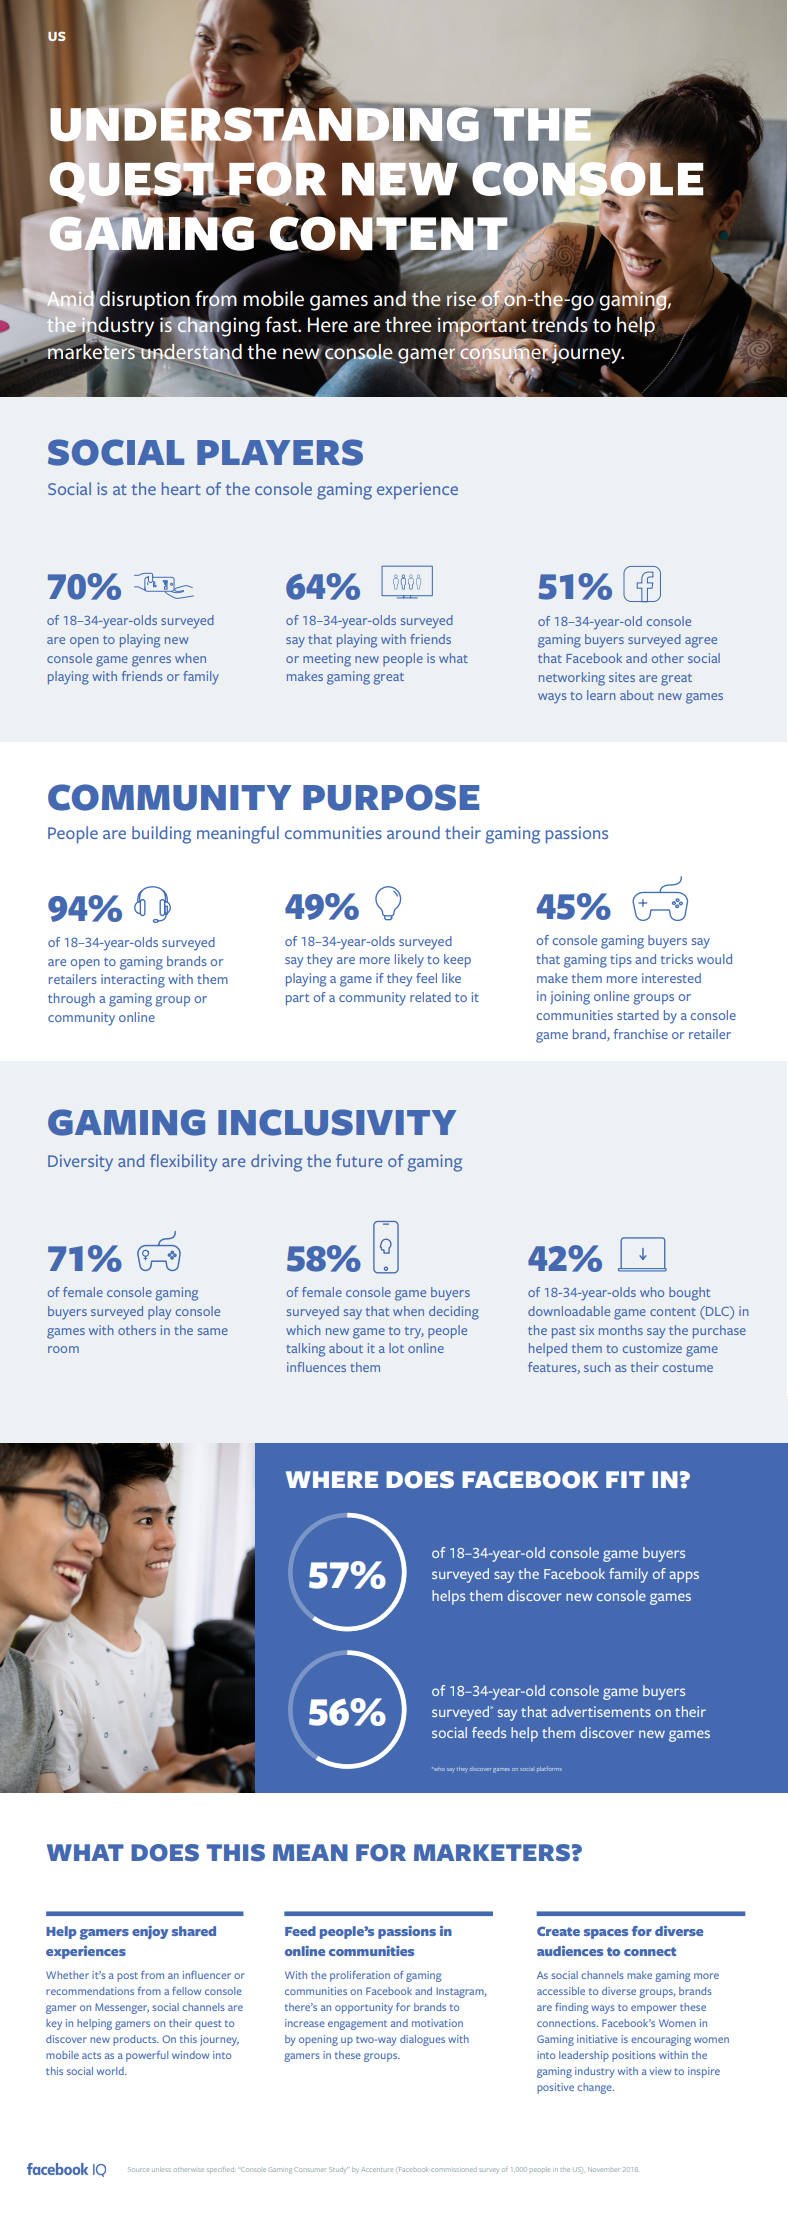 Facebook gaming insights infographic